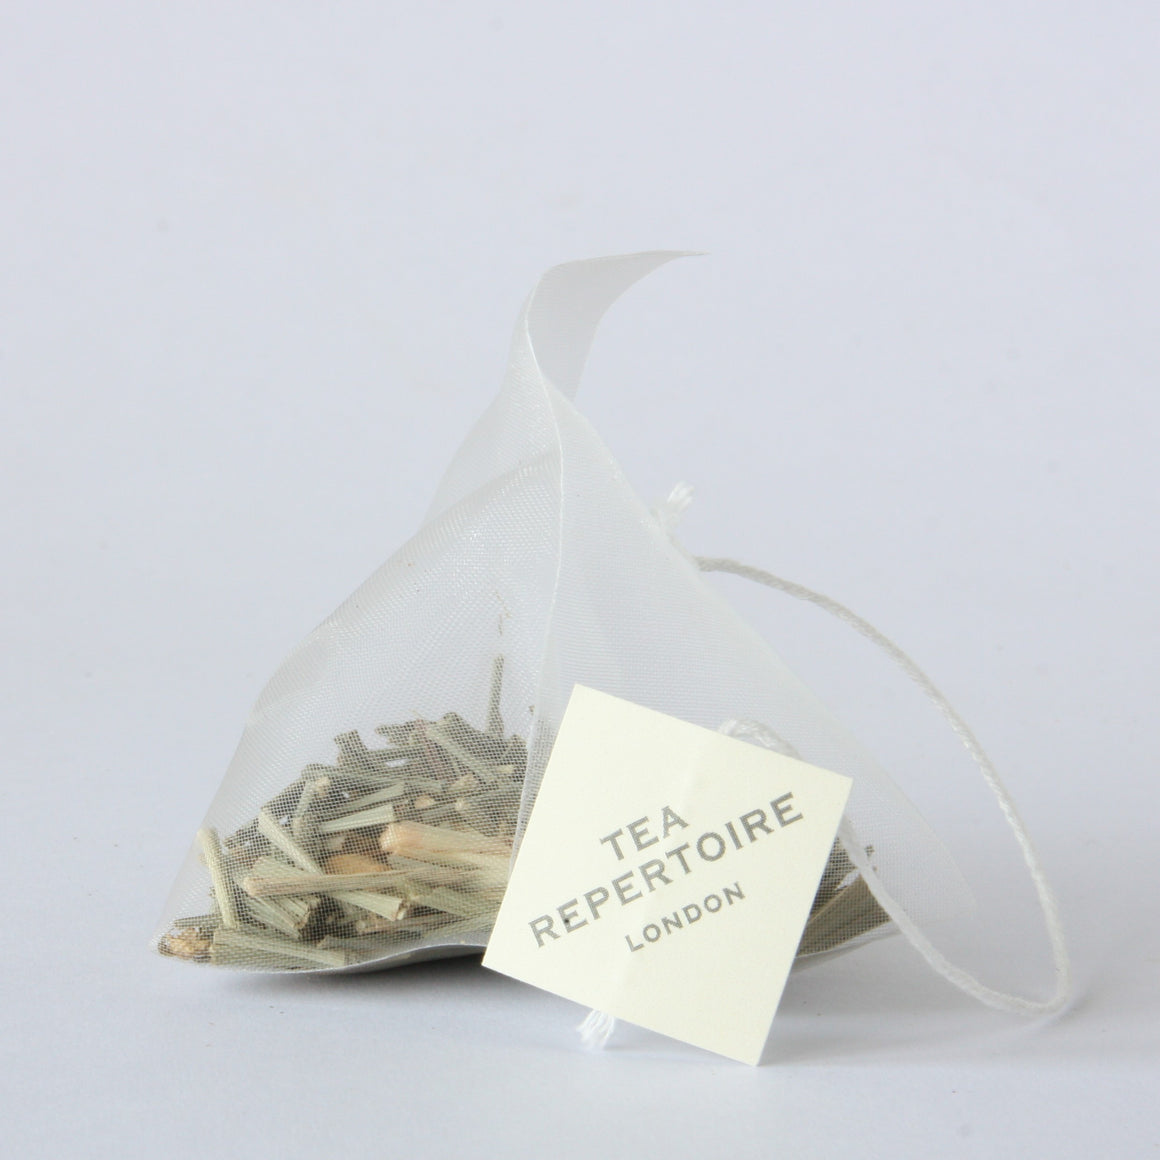 Lemongrass and ginger tea bag